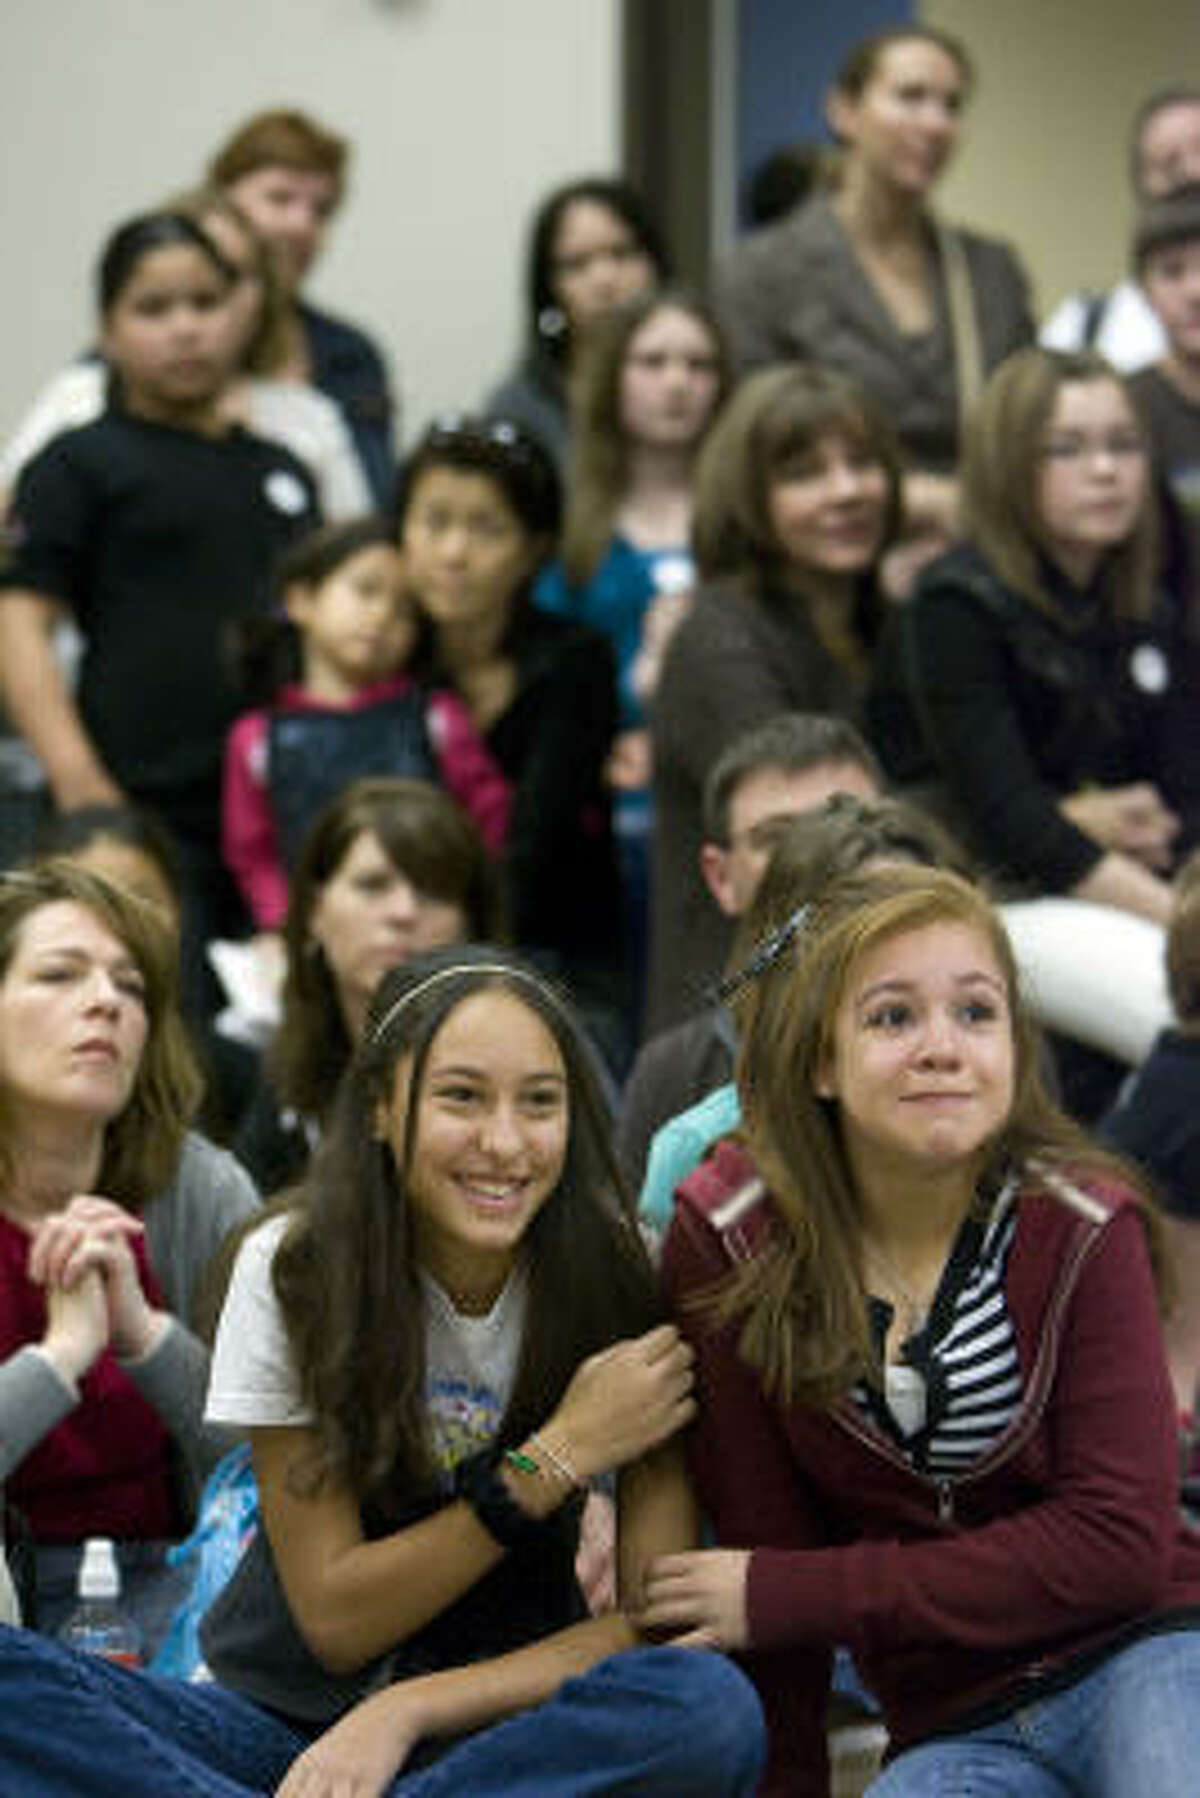 Christa Coleman, 12, left, and Megan Jones, also 12, listen to audition instructions with excitement.